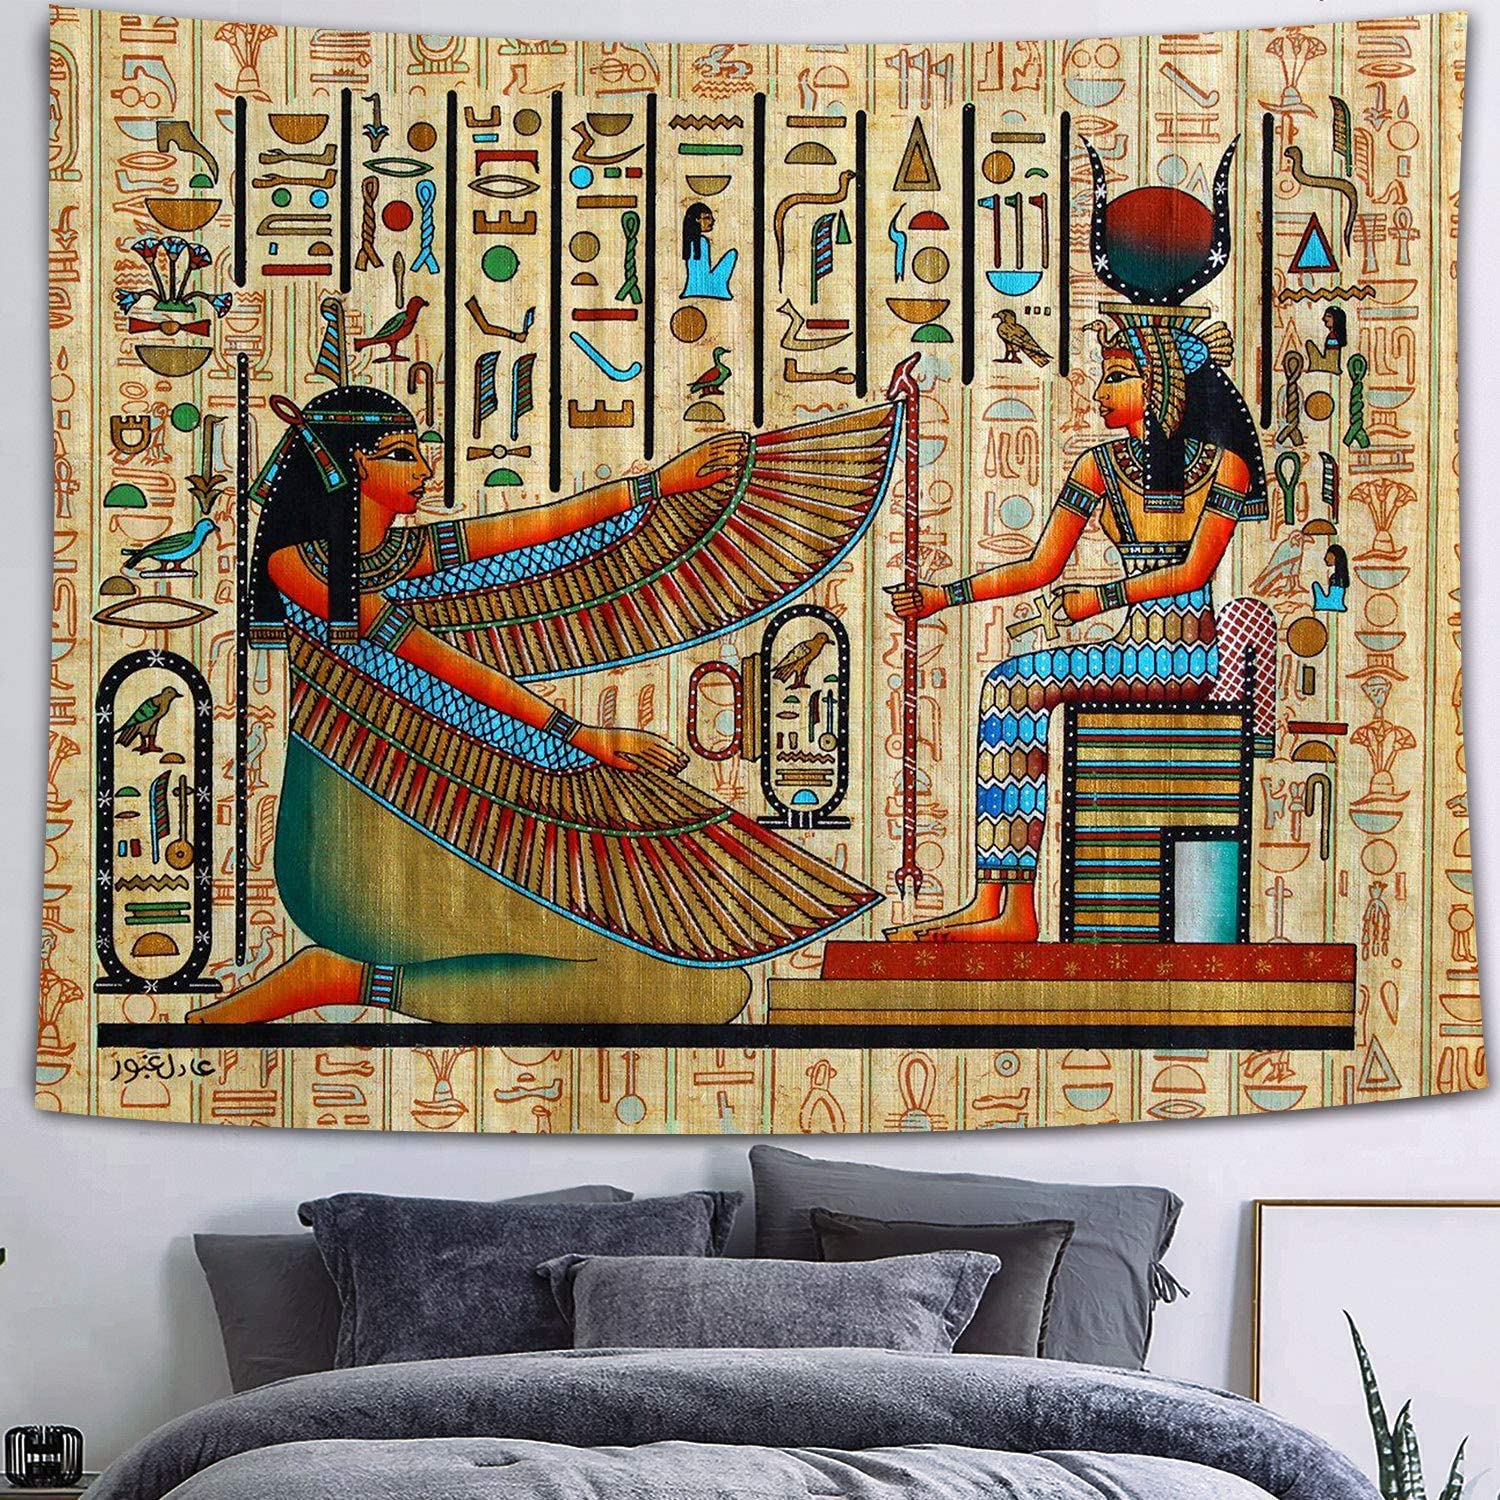 FEASRT Egyptian Gods Tapestry Ancient Hieroglyphic Tapestry Wall Hanging Tapestries for Home Bedroom Living Room Apartment Dorm Office Decor 80x60 Inches GTQQAY130